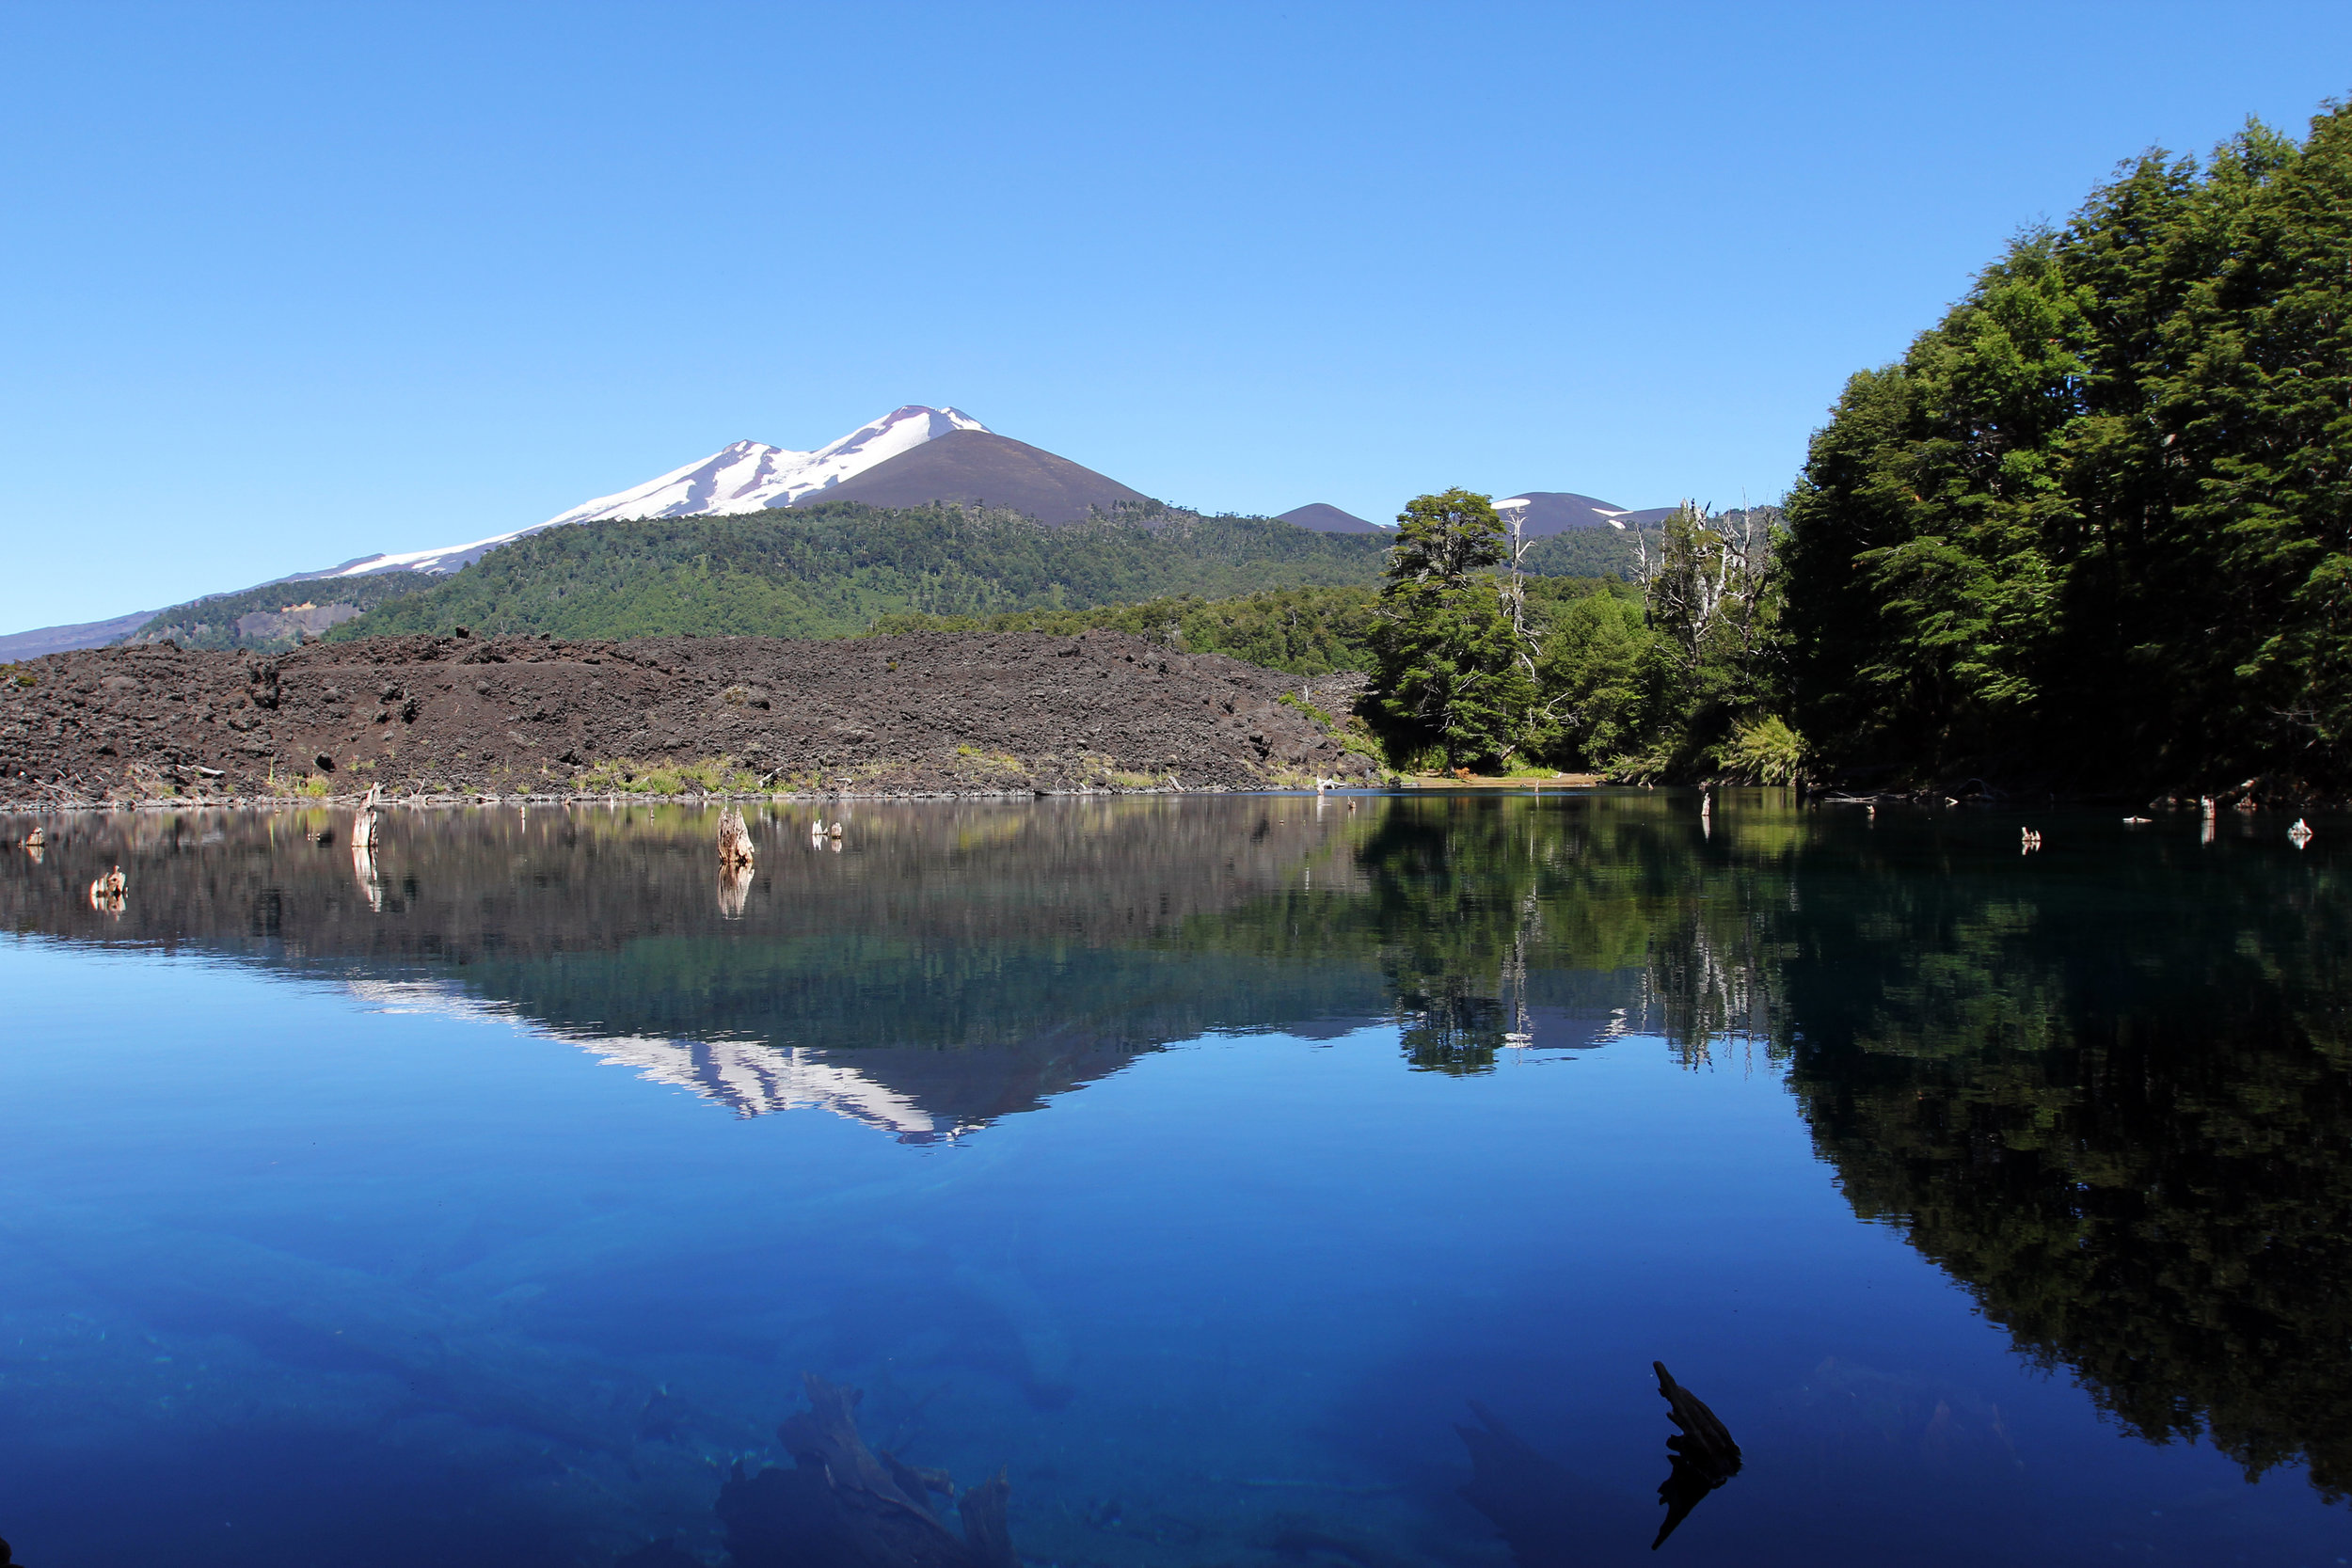 The Llaima Volcano reflected in Lake Arcoiris  | Conguillo National Park, Chile January 2015